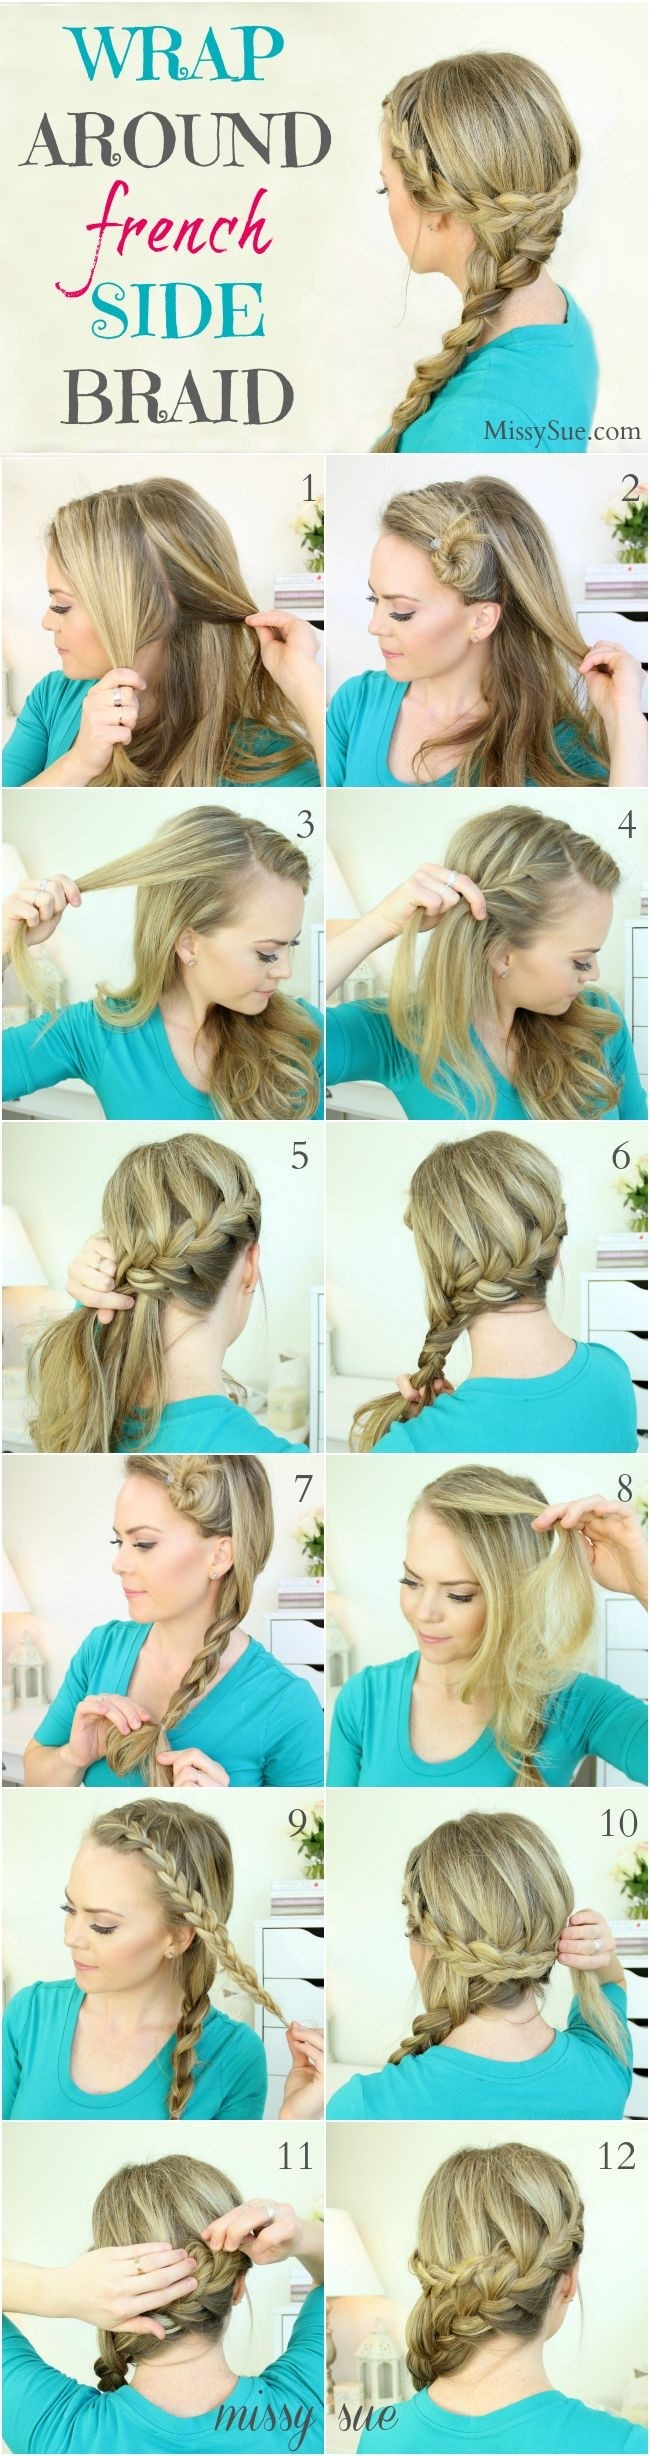 Swell 16 Side Braid Hairstyles Pretty Long Hair Ideas Styles Weekly Short Hairstyles For Black Women Fulllsitofus